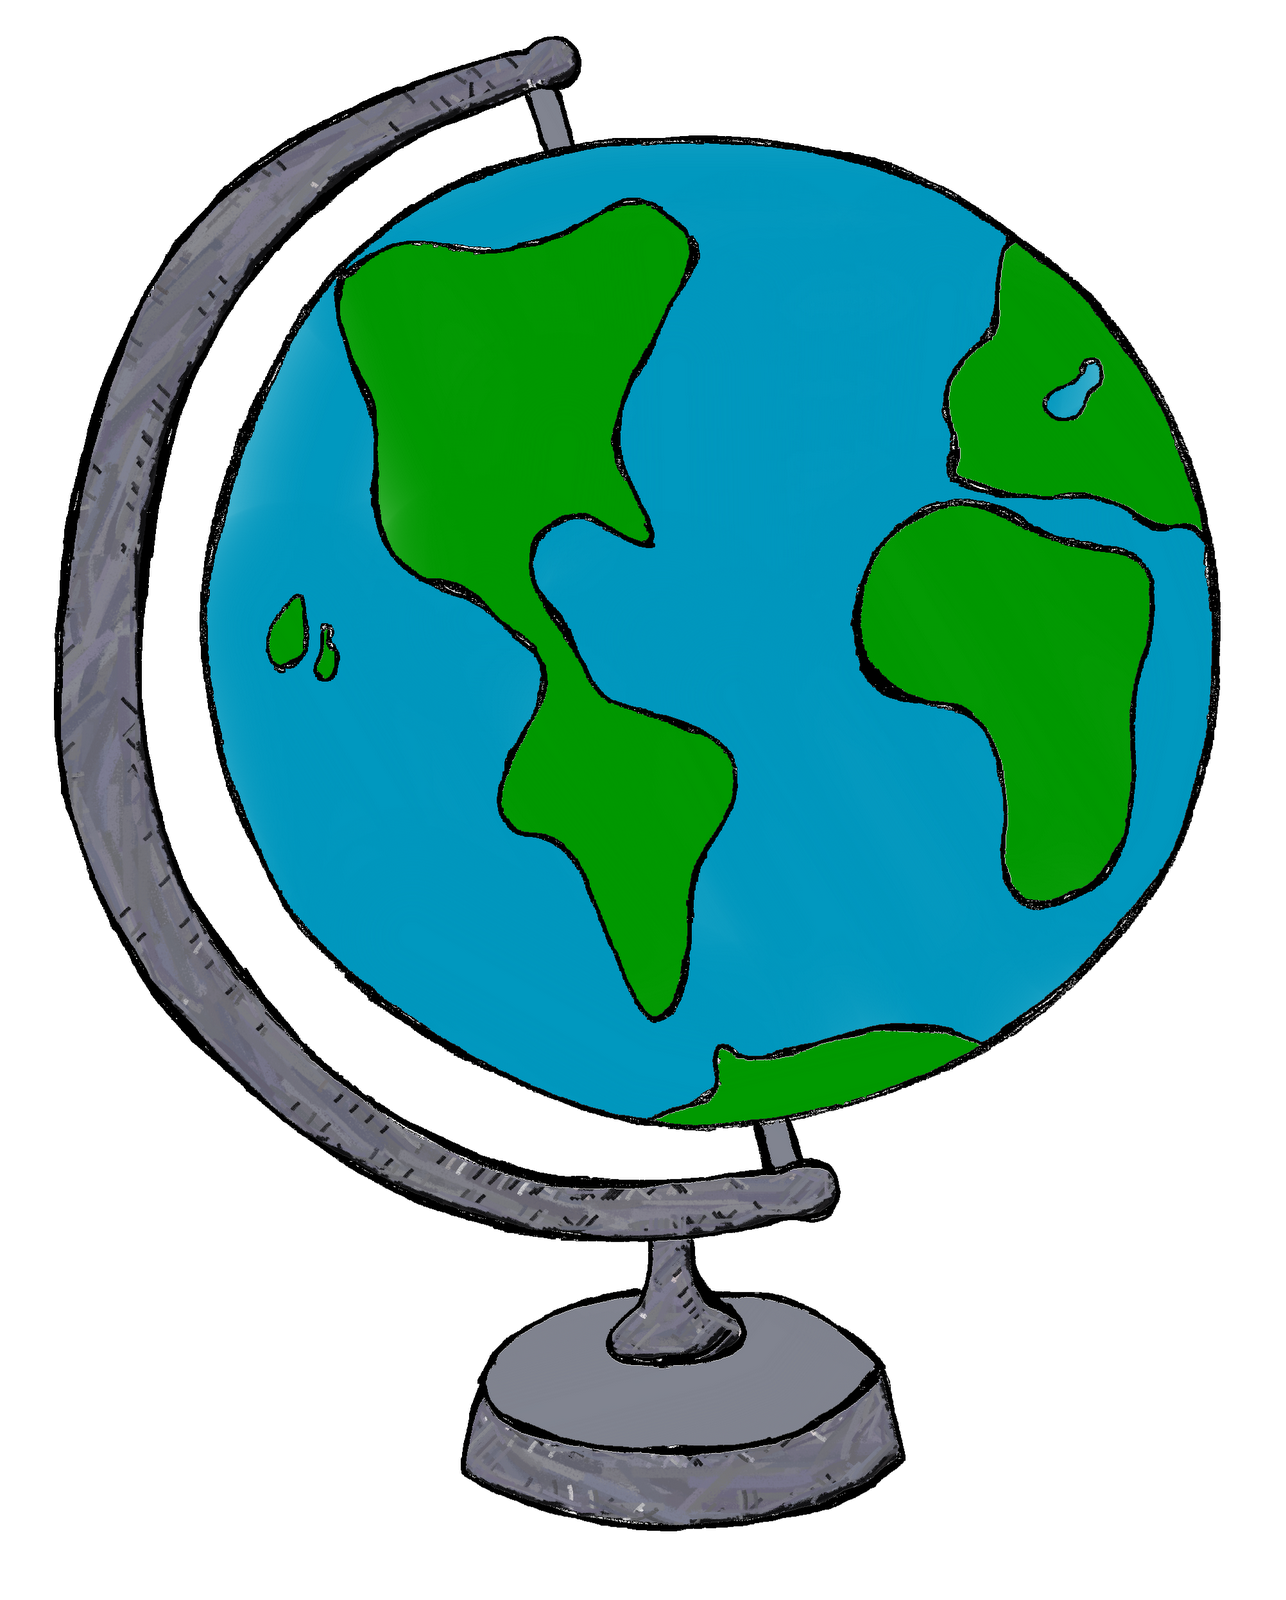 Clipart Cliparts Cliparts Geography Globe